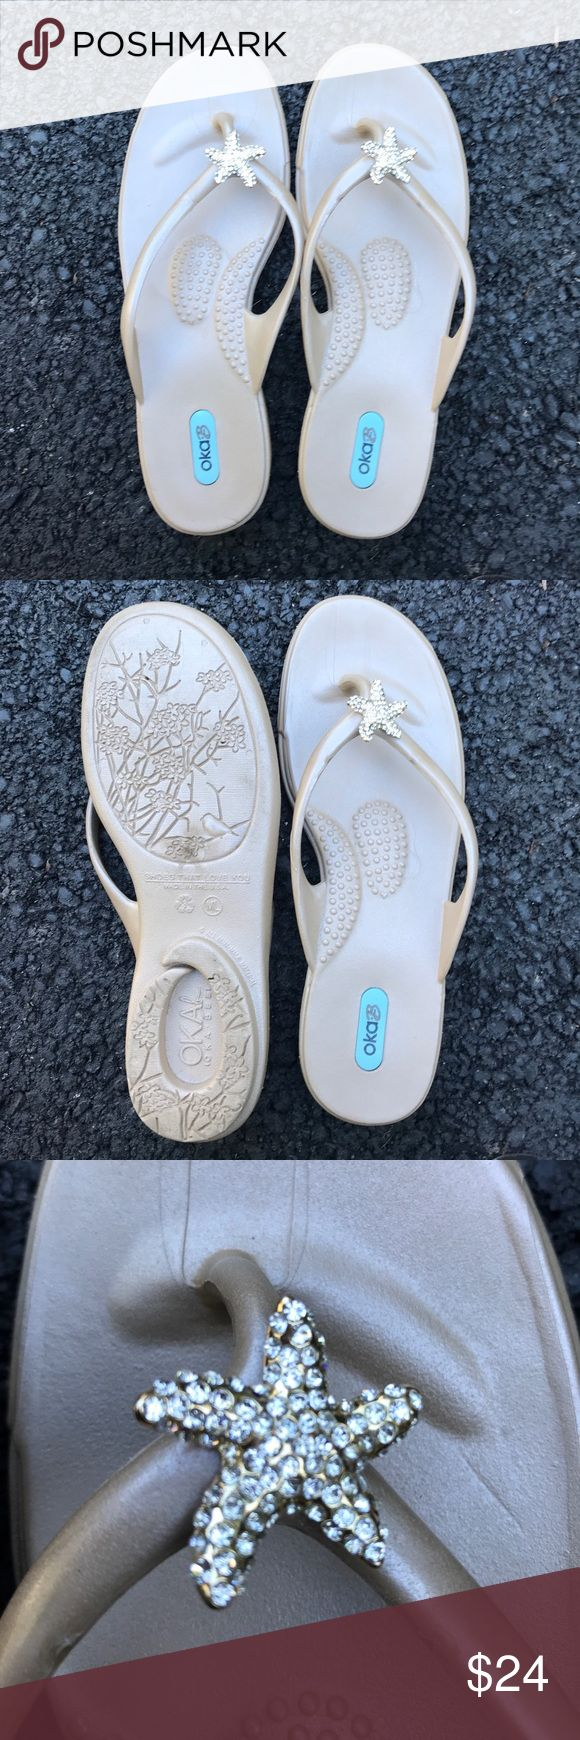 Oka B sparkle heaven! Neutral flip flops blingy! These are the kind of shoes that look waaaay more expensive than they are.  They are made out of the same material as crocs, so they are virtually indestructible.  Then they have this ultra sparkly starfish detail combined with a really tasteful soft neutral color.  They are size M/L but fit me perfectly and I'm 8.5. OKA b. Shoes Sandals